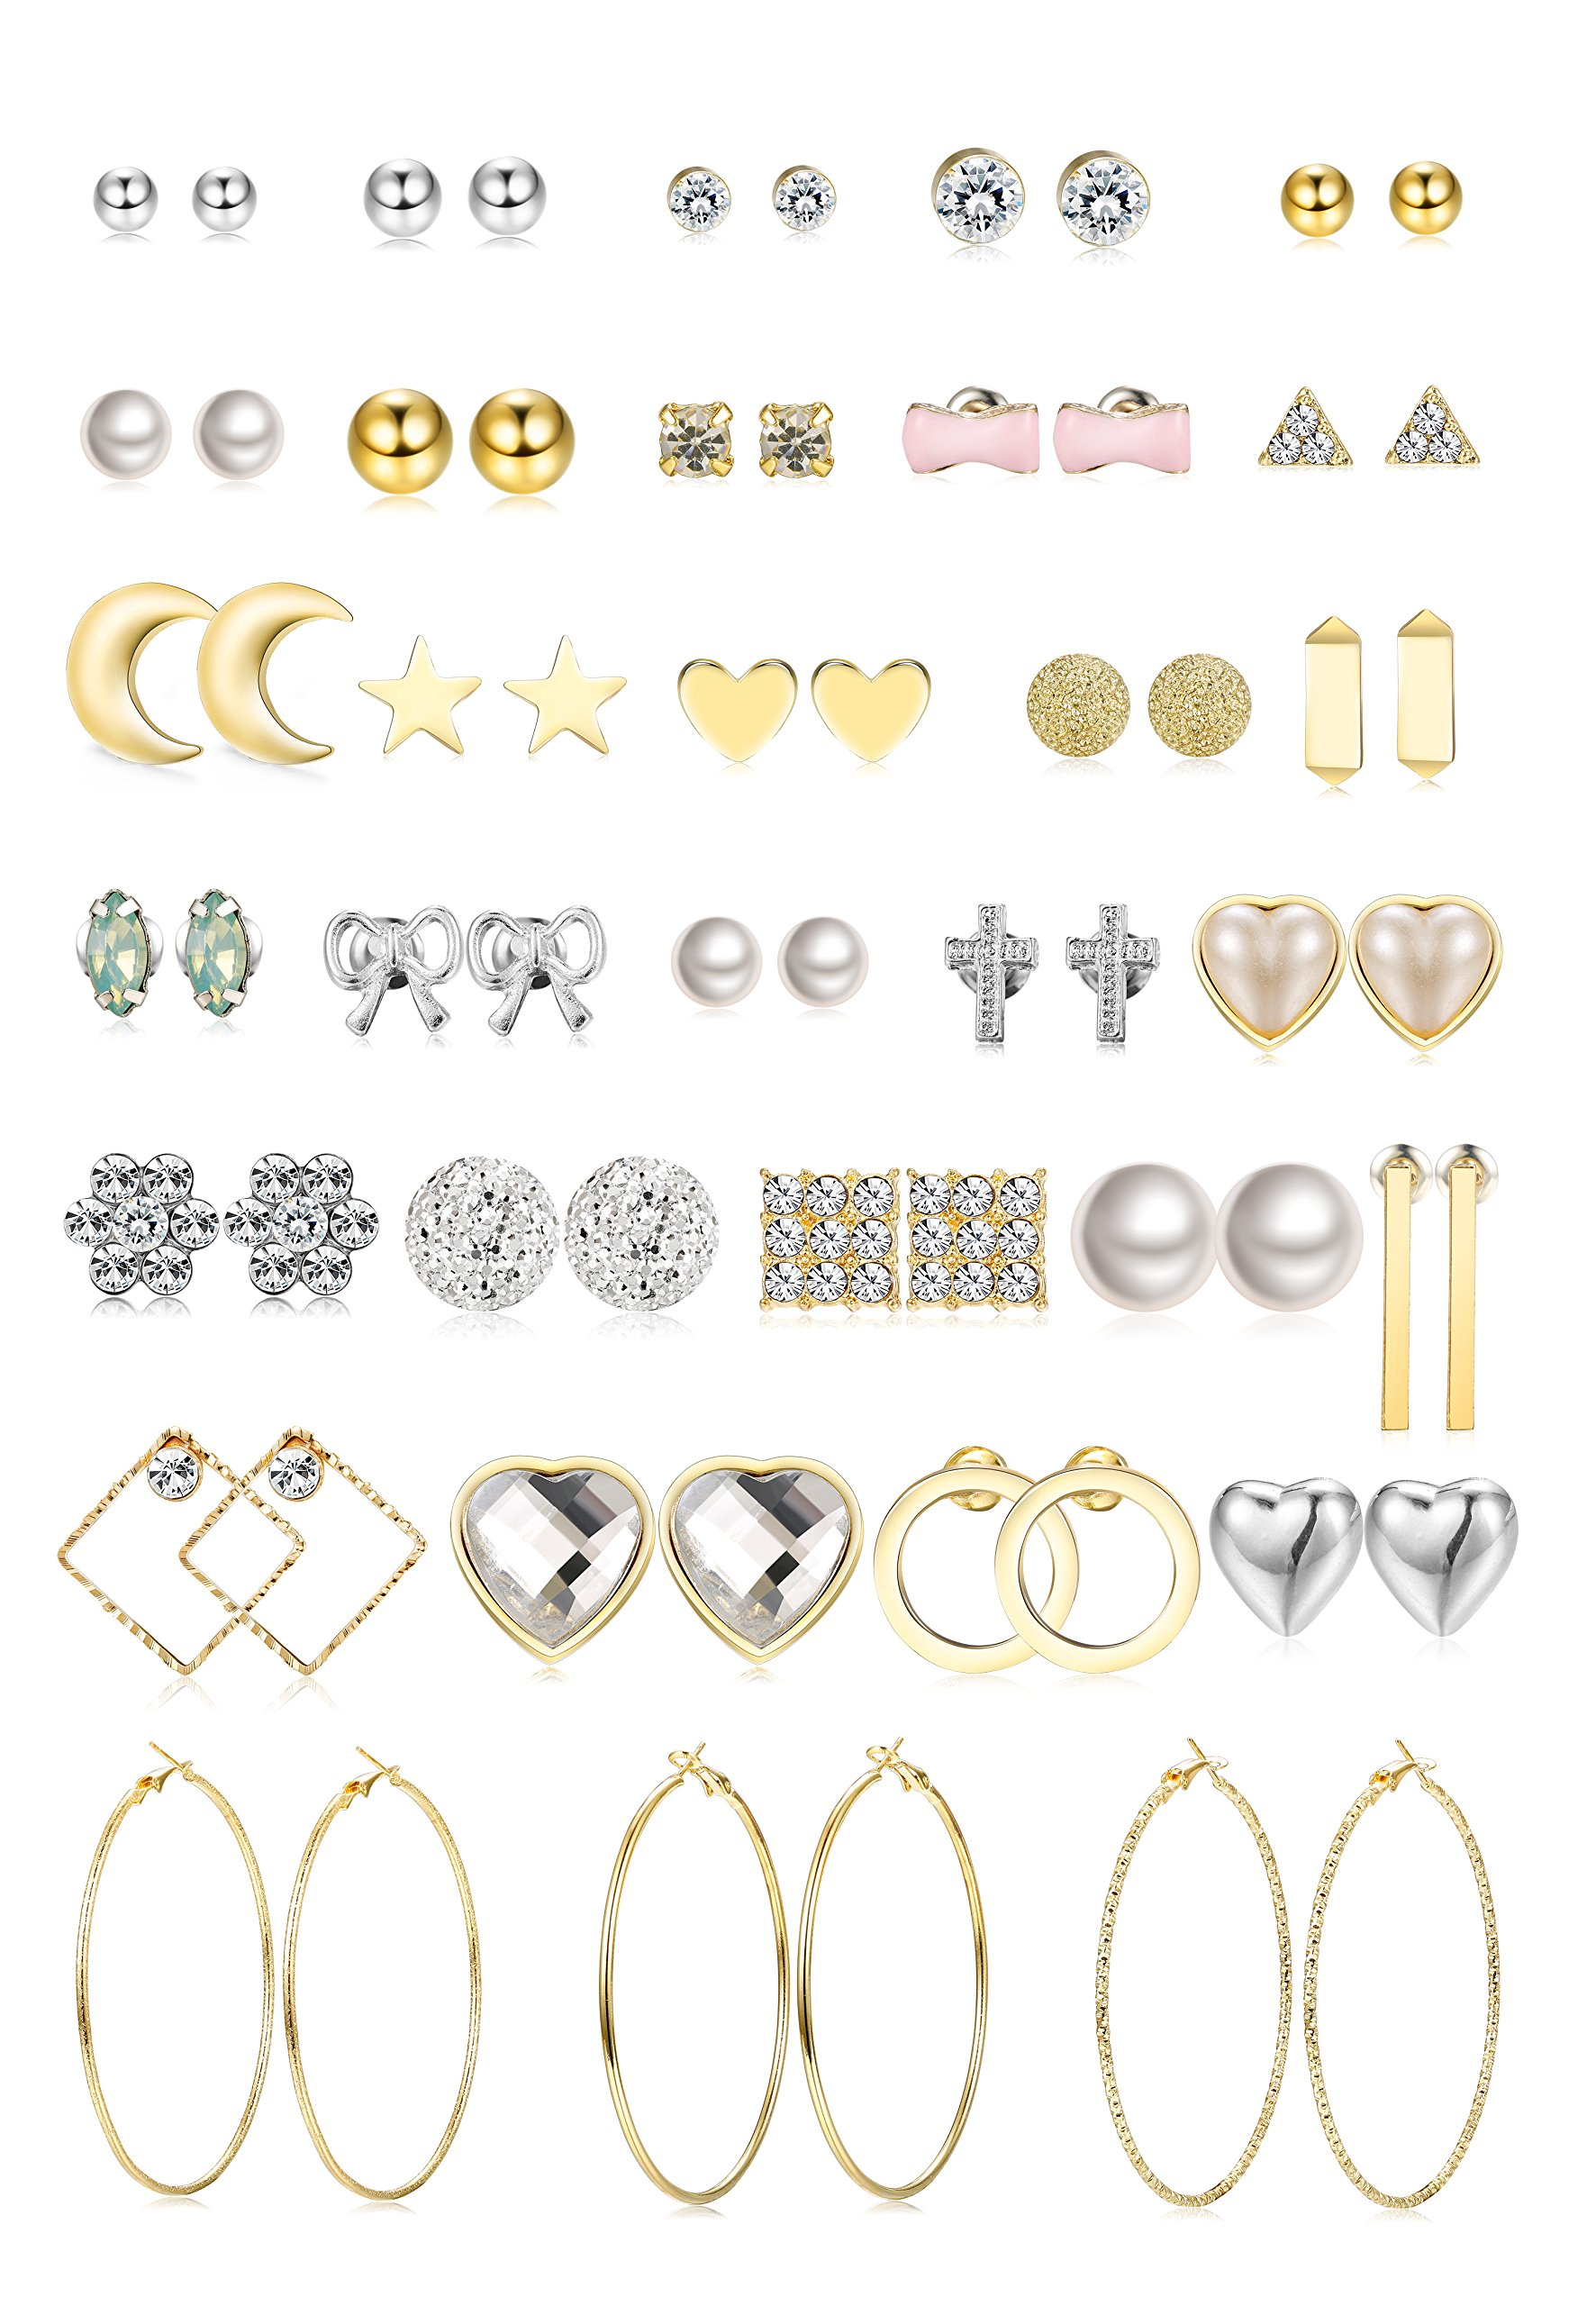 Jstyle 32 Pairs Assorted Multiple Stud Earrings for Women Girls Simple Cute Big Hoop Earrings Set